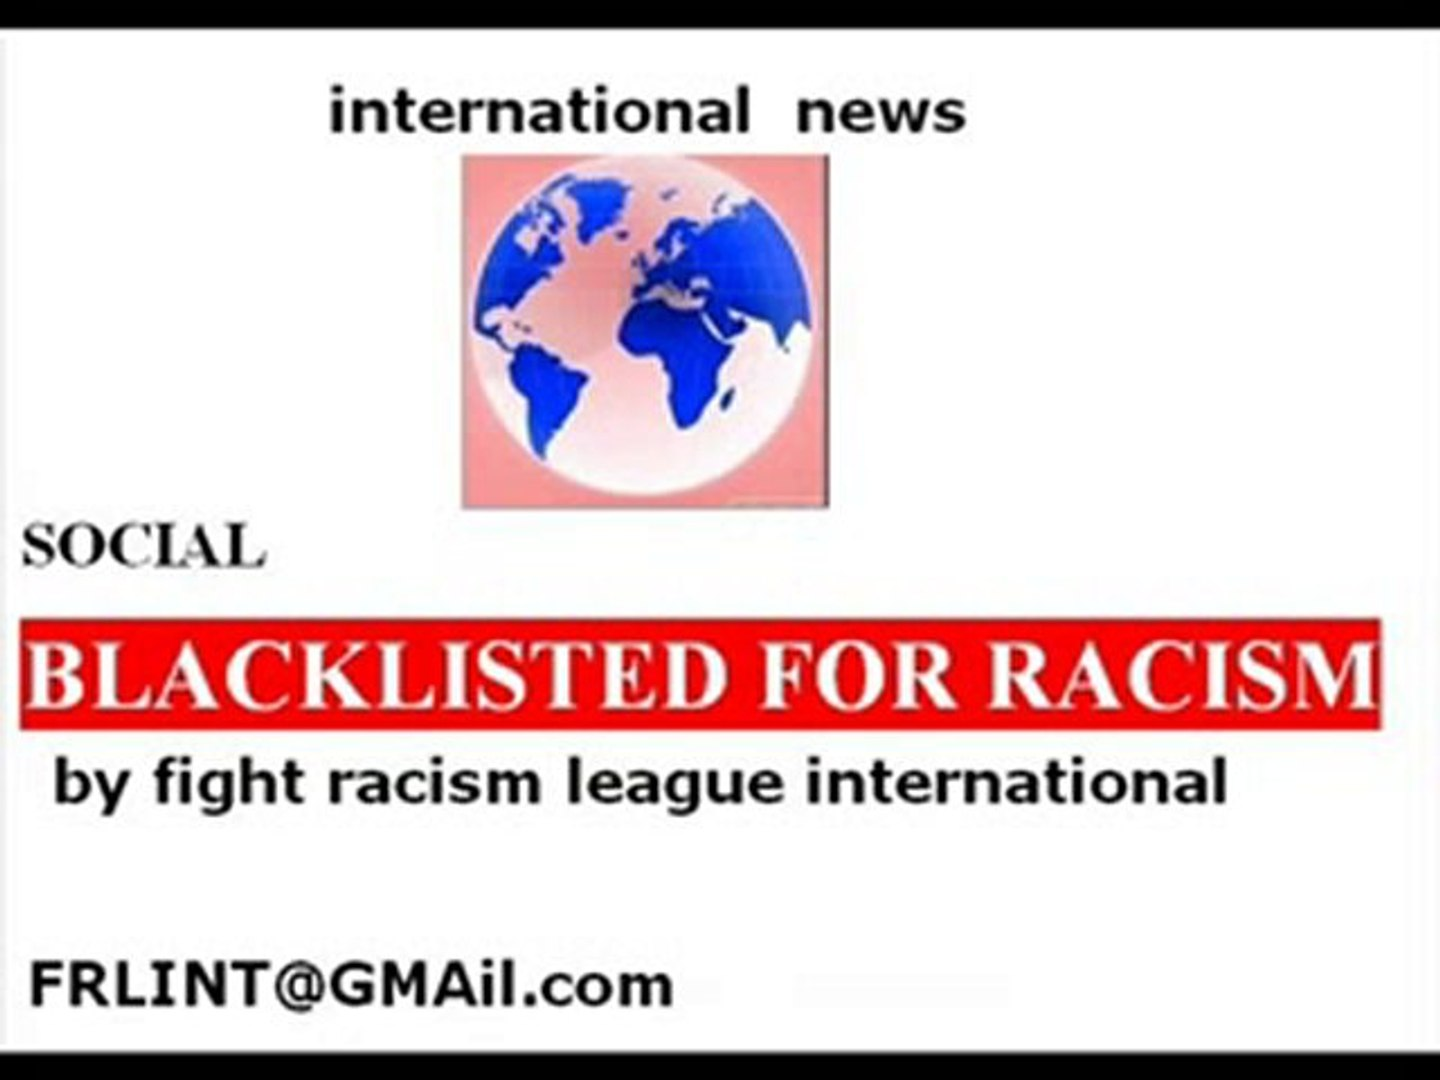 NEWS Moulin de Broukay blacklisted for RACISM